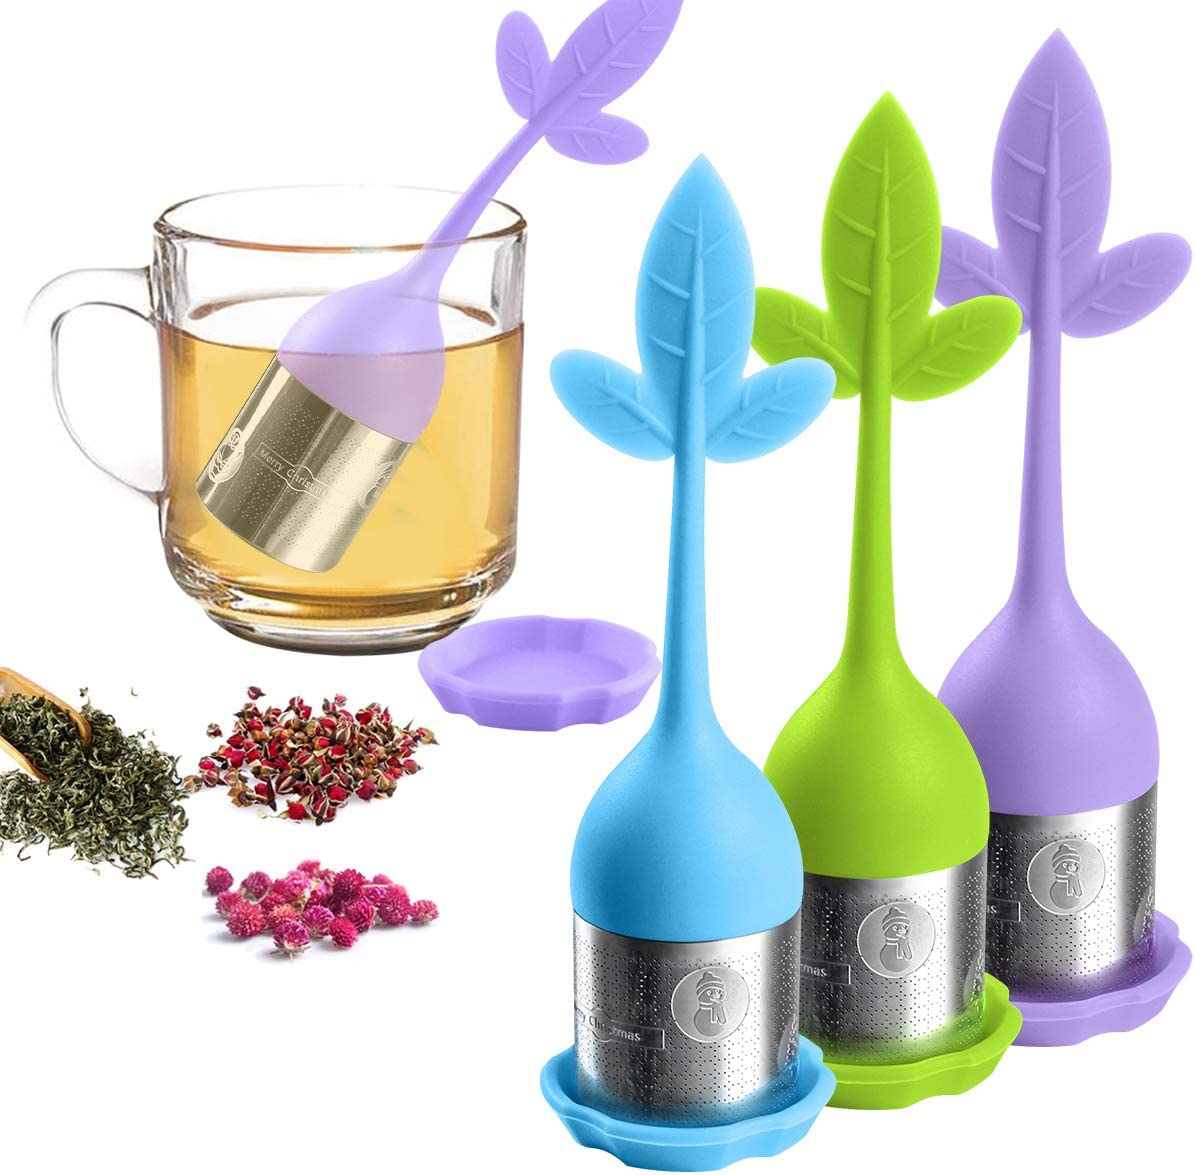 3x Silicone Tea Infuser Loose Floating Leaf Filter Strainer Stainless Steel Ball